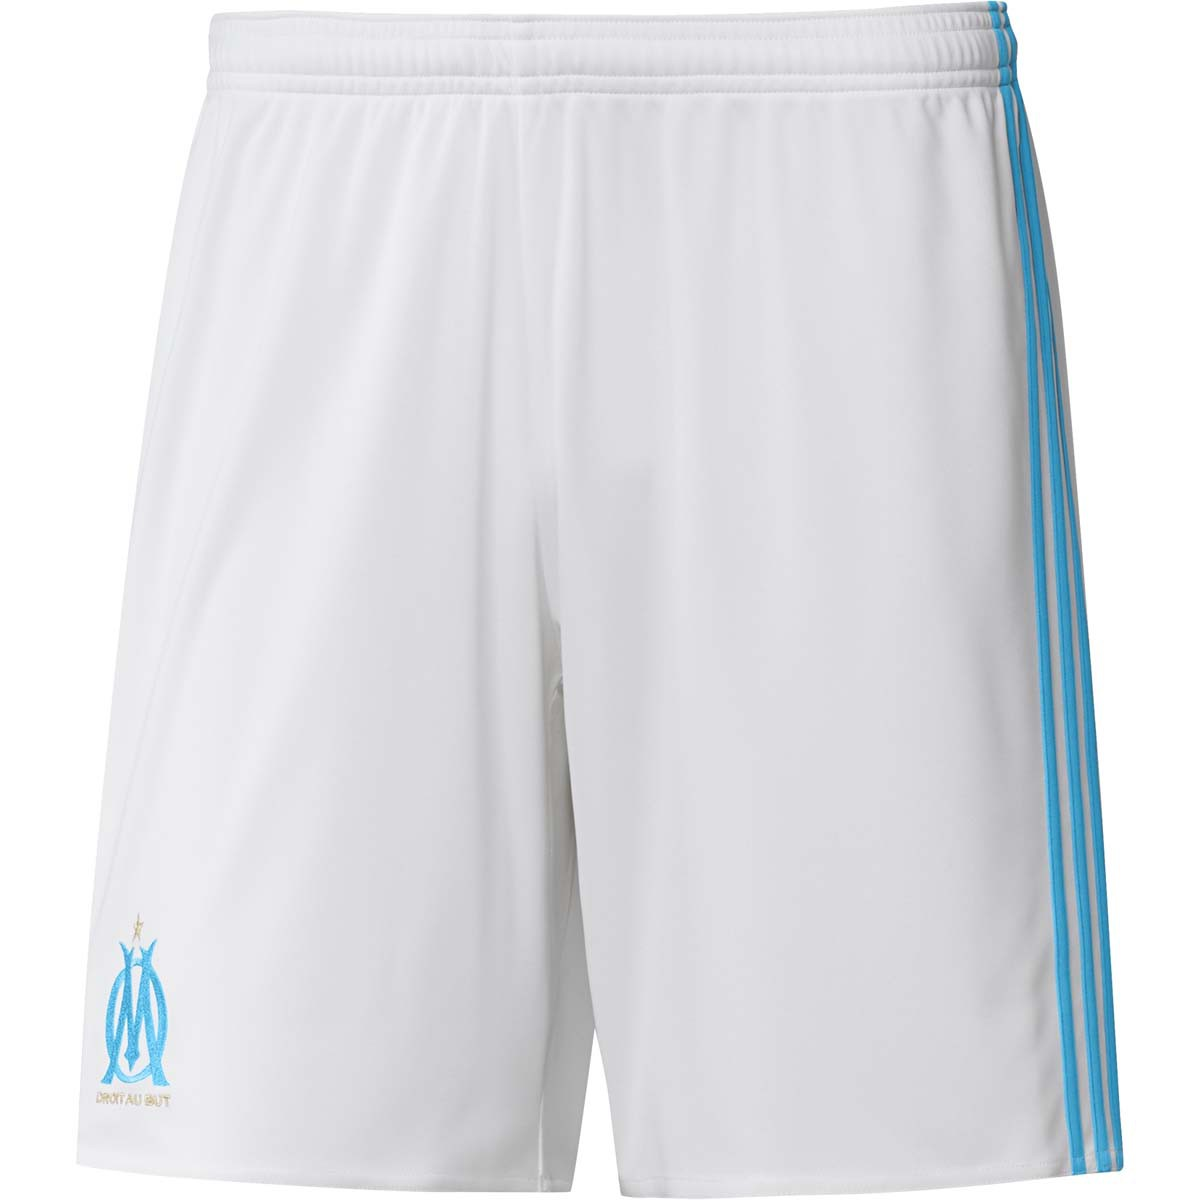 ADIDAS OM SHORT DOMICILE JUNIOR 20172018 Olympique de